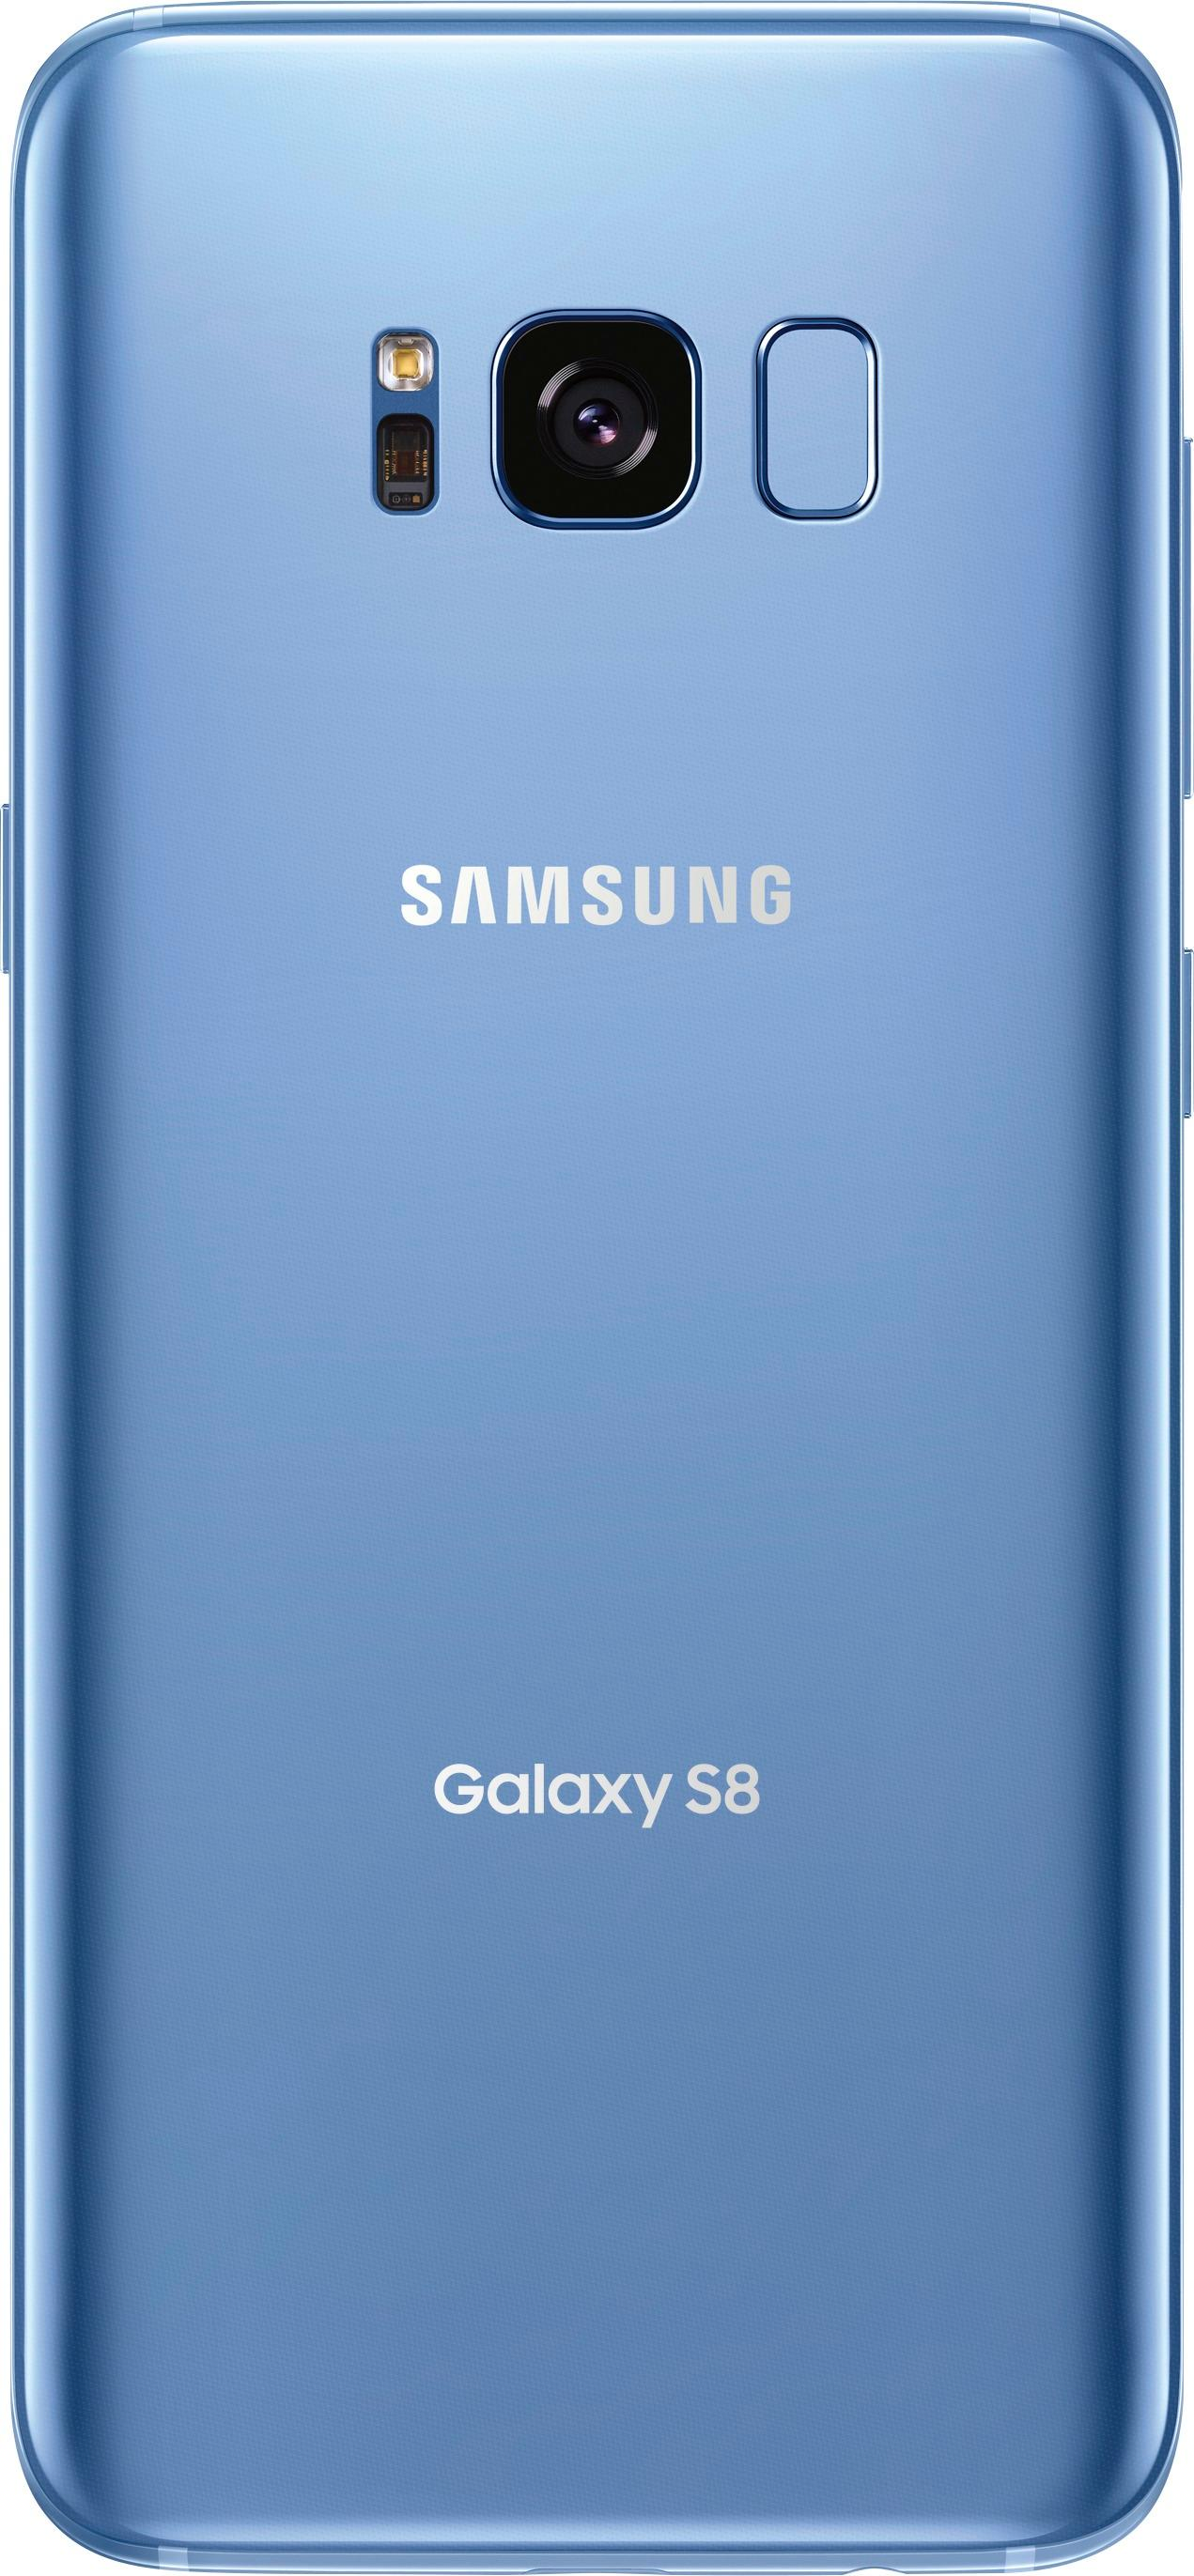 Samsung-Galaxy-S8-SM-G950U-64GB-GSM-Unlocked-Android-Smartphone-Shadow-LCD